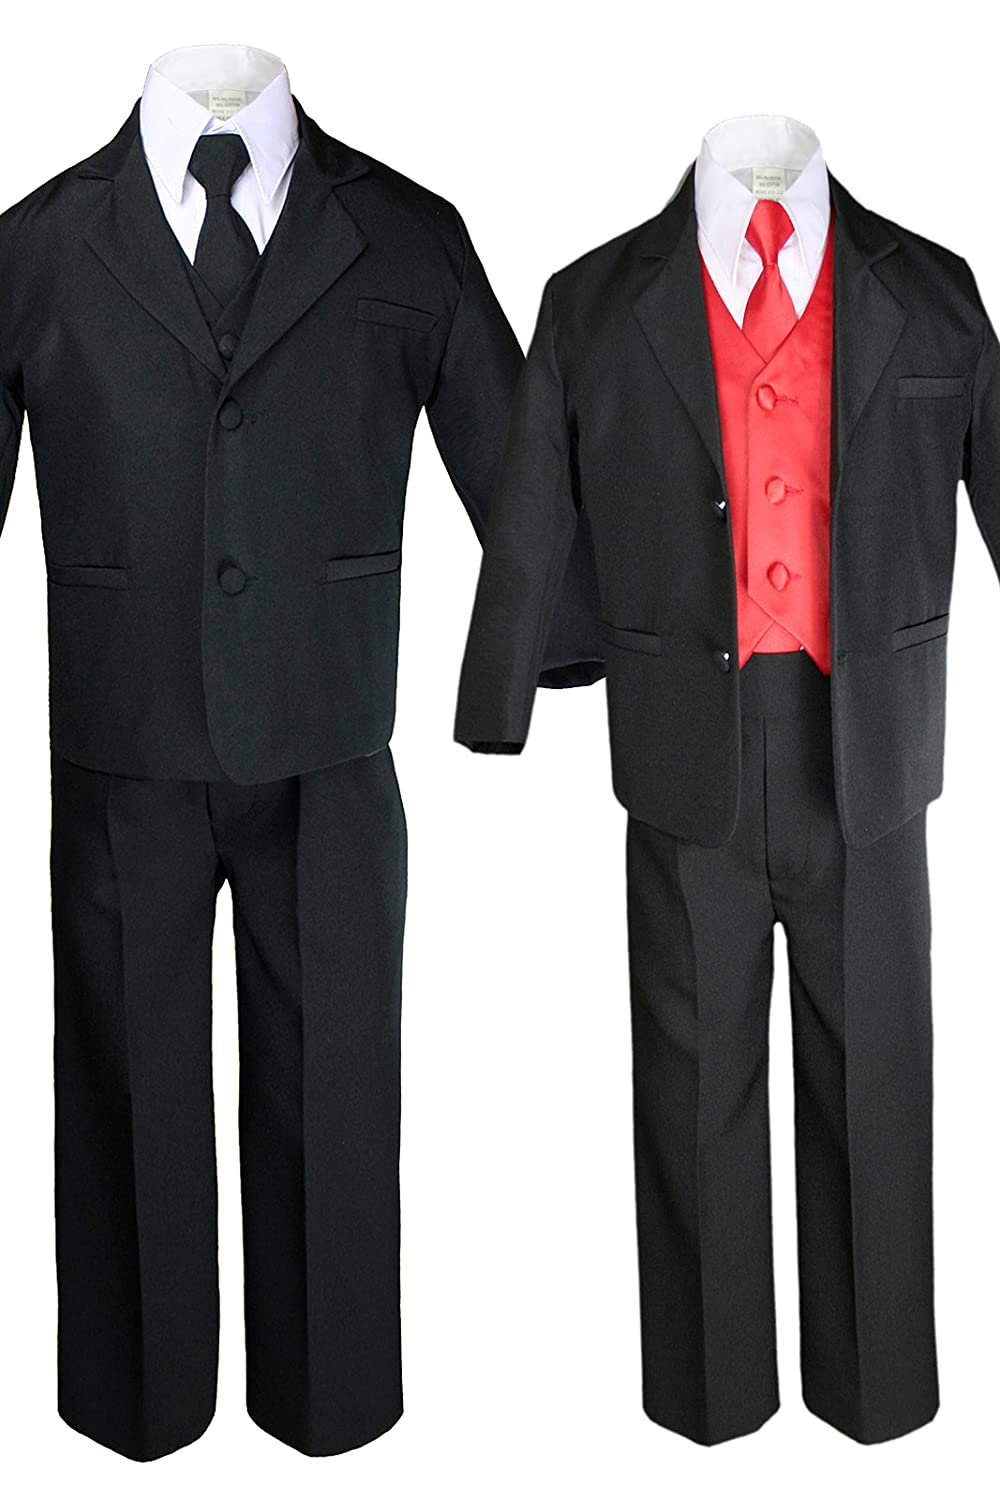 Unotux 7pc Boys Black Suit with Satin Red Vest Set from Baby to Teen